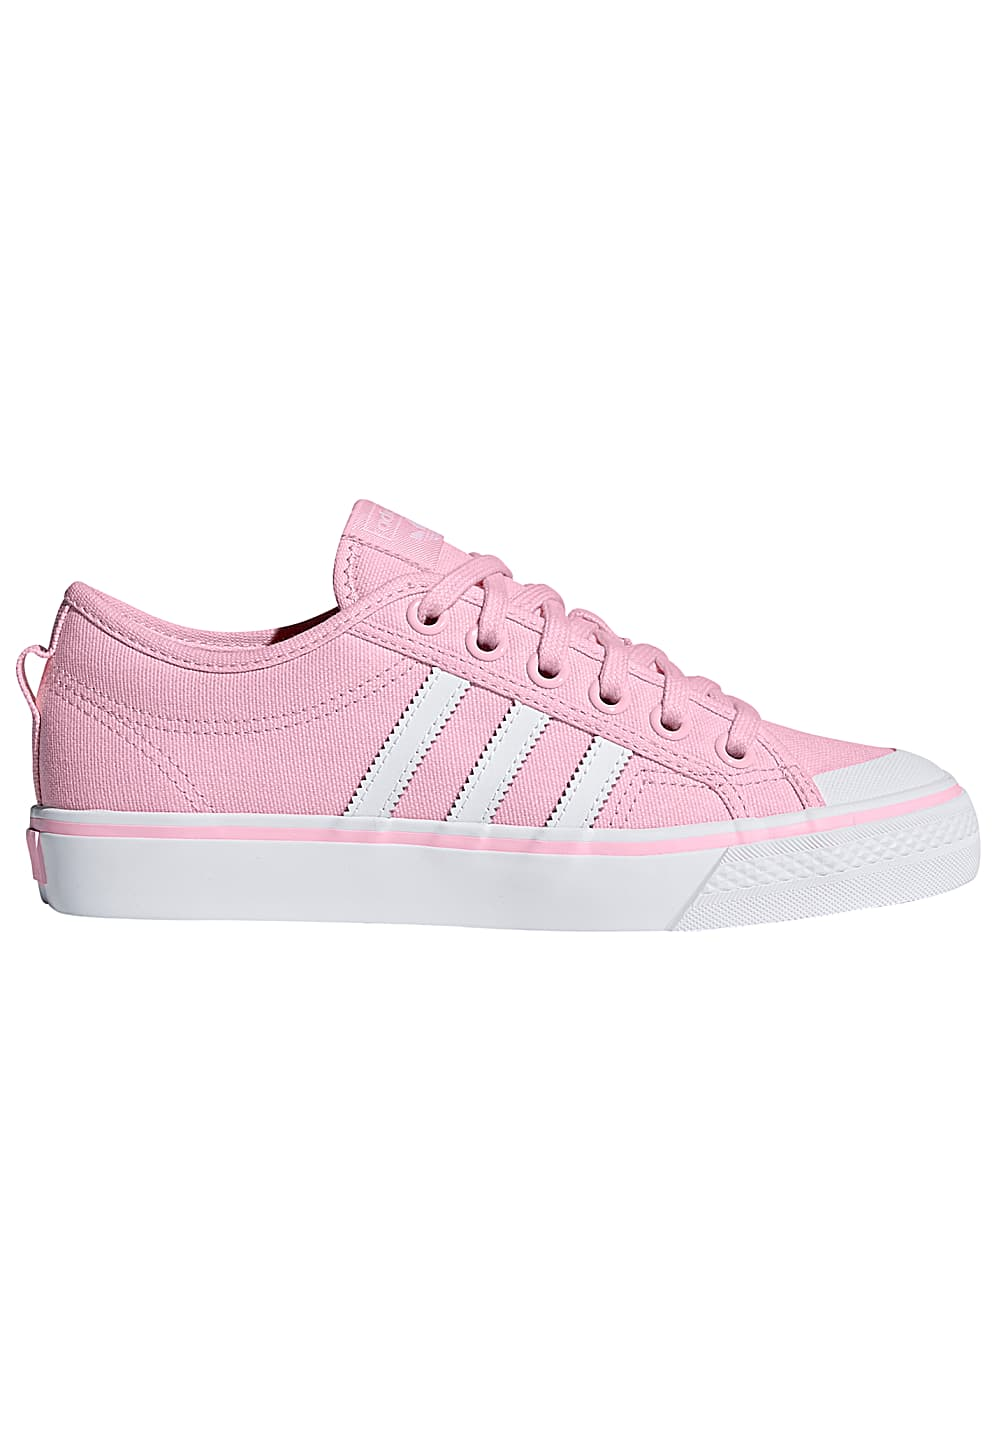 ADIDAS ORIGINALS Nizza - Baskets pour Femme - Rose